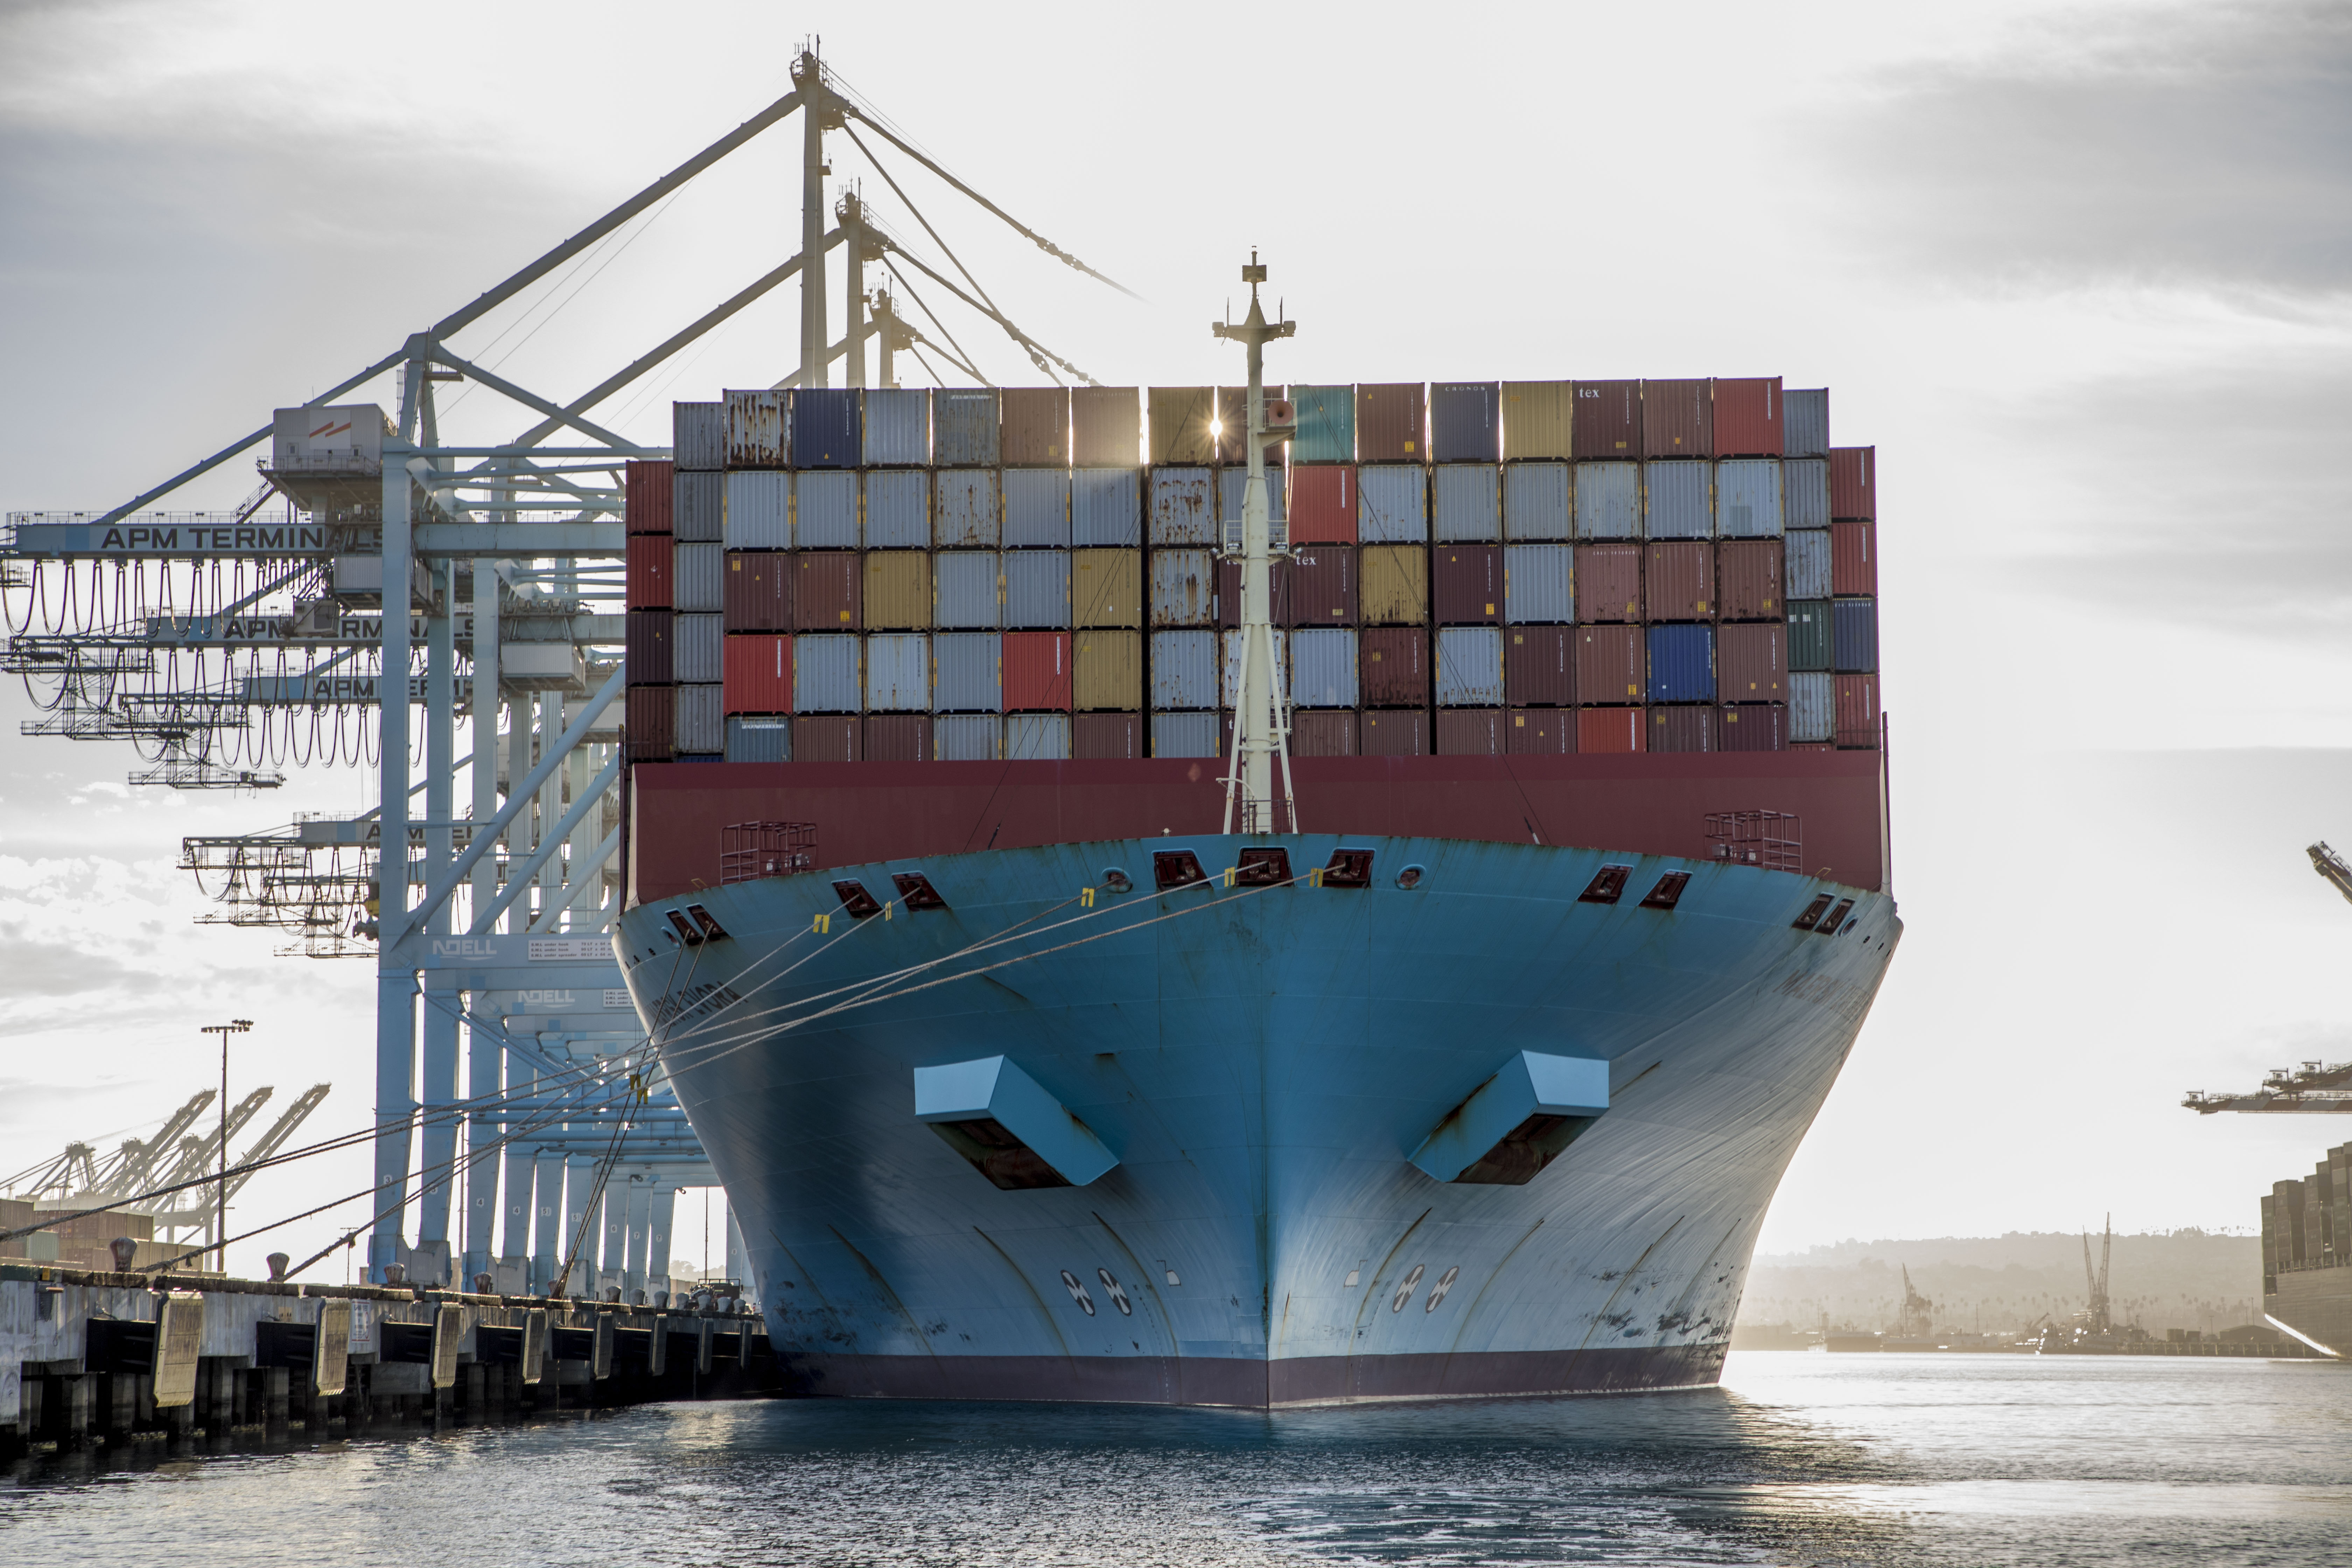 Port of la copy of 1171017 maersk evora selects 09